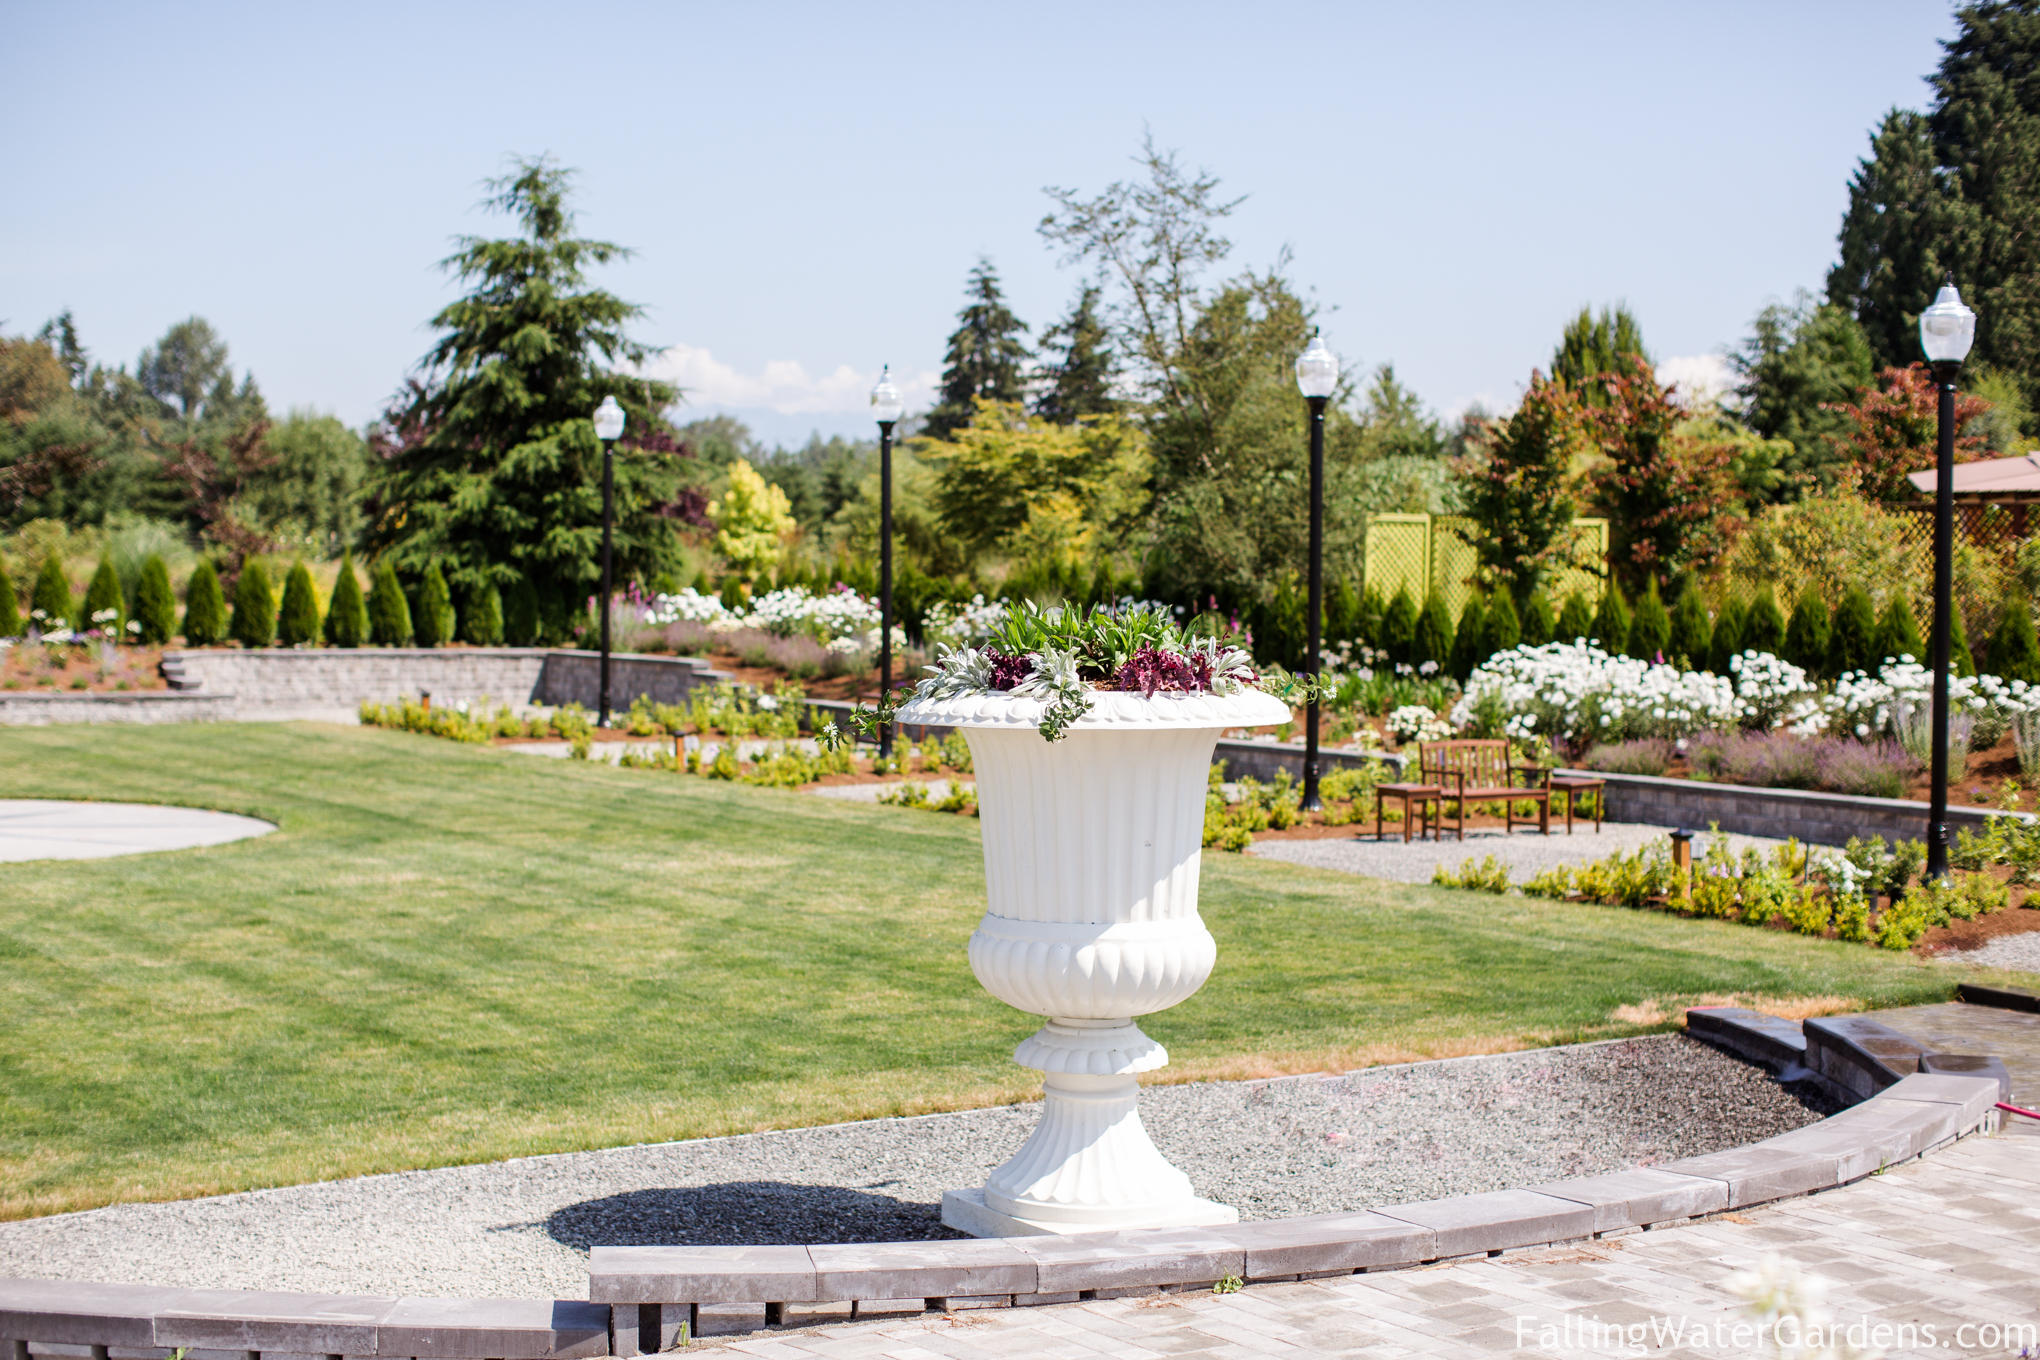 Formal sunken garden, part of the wedding venue exclusively at Falling Water Gardens in Monroe Washington